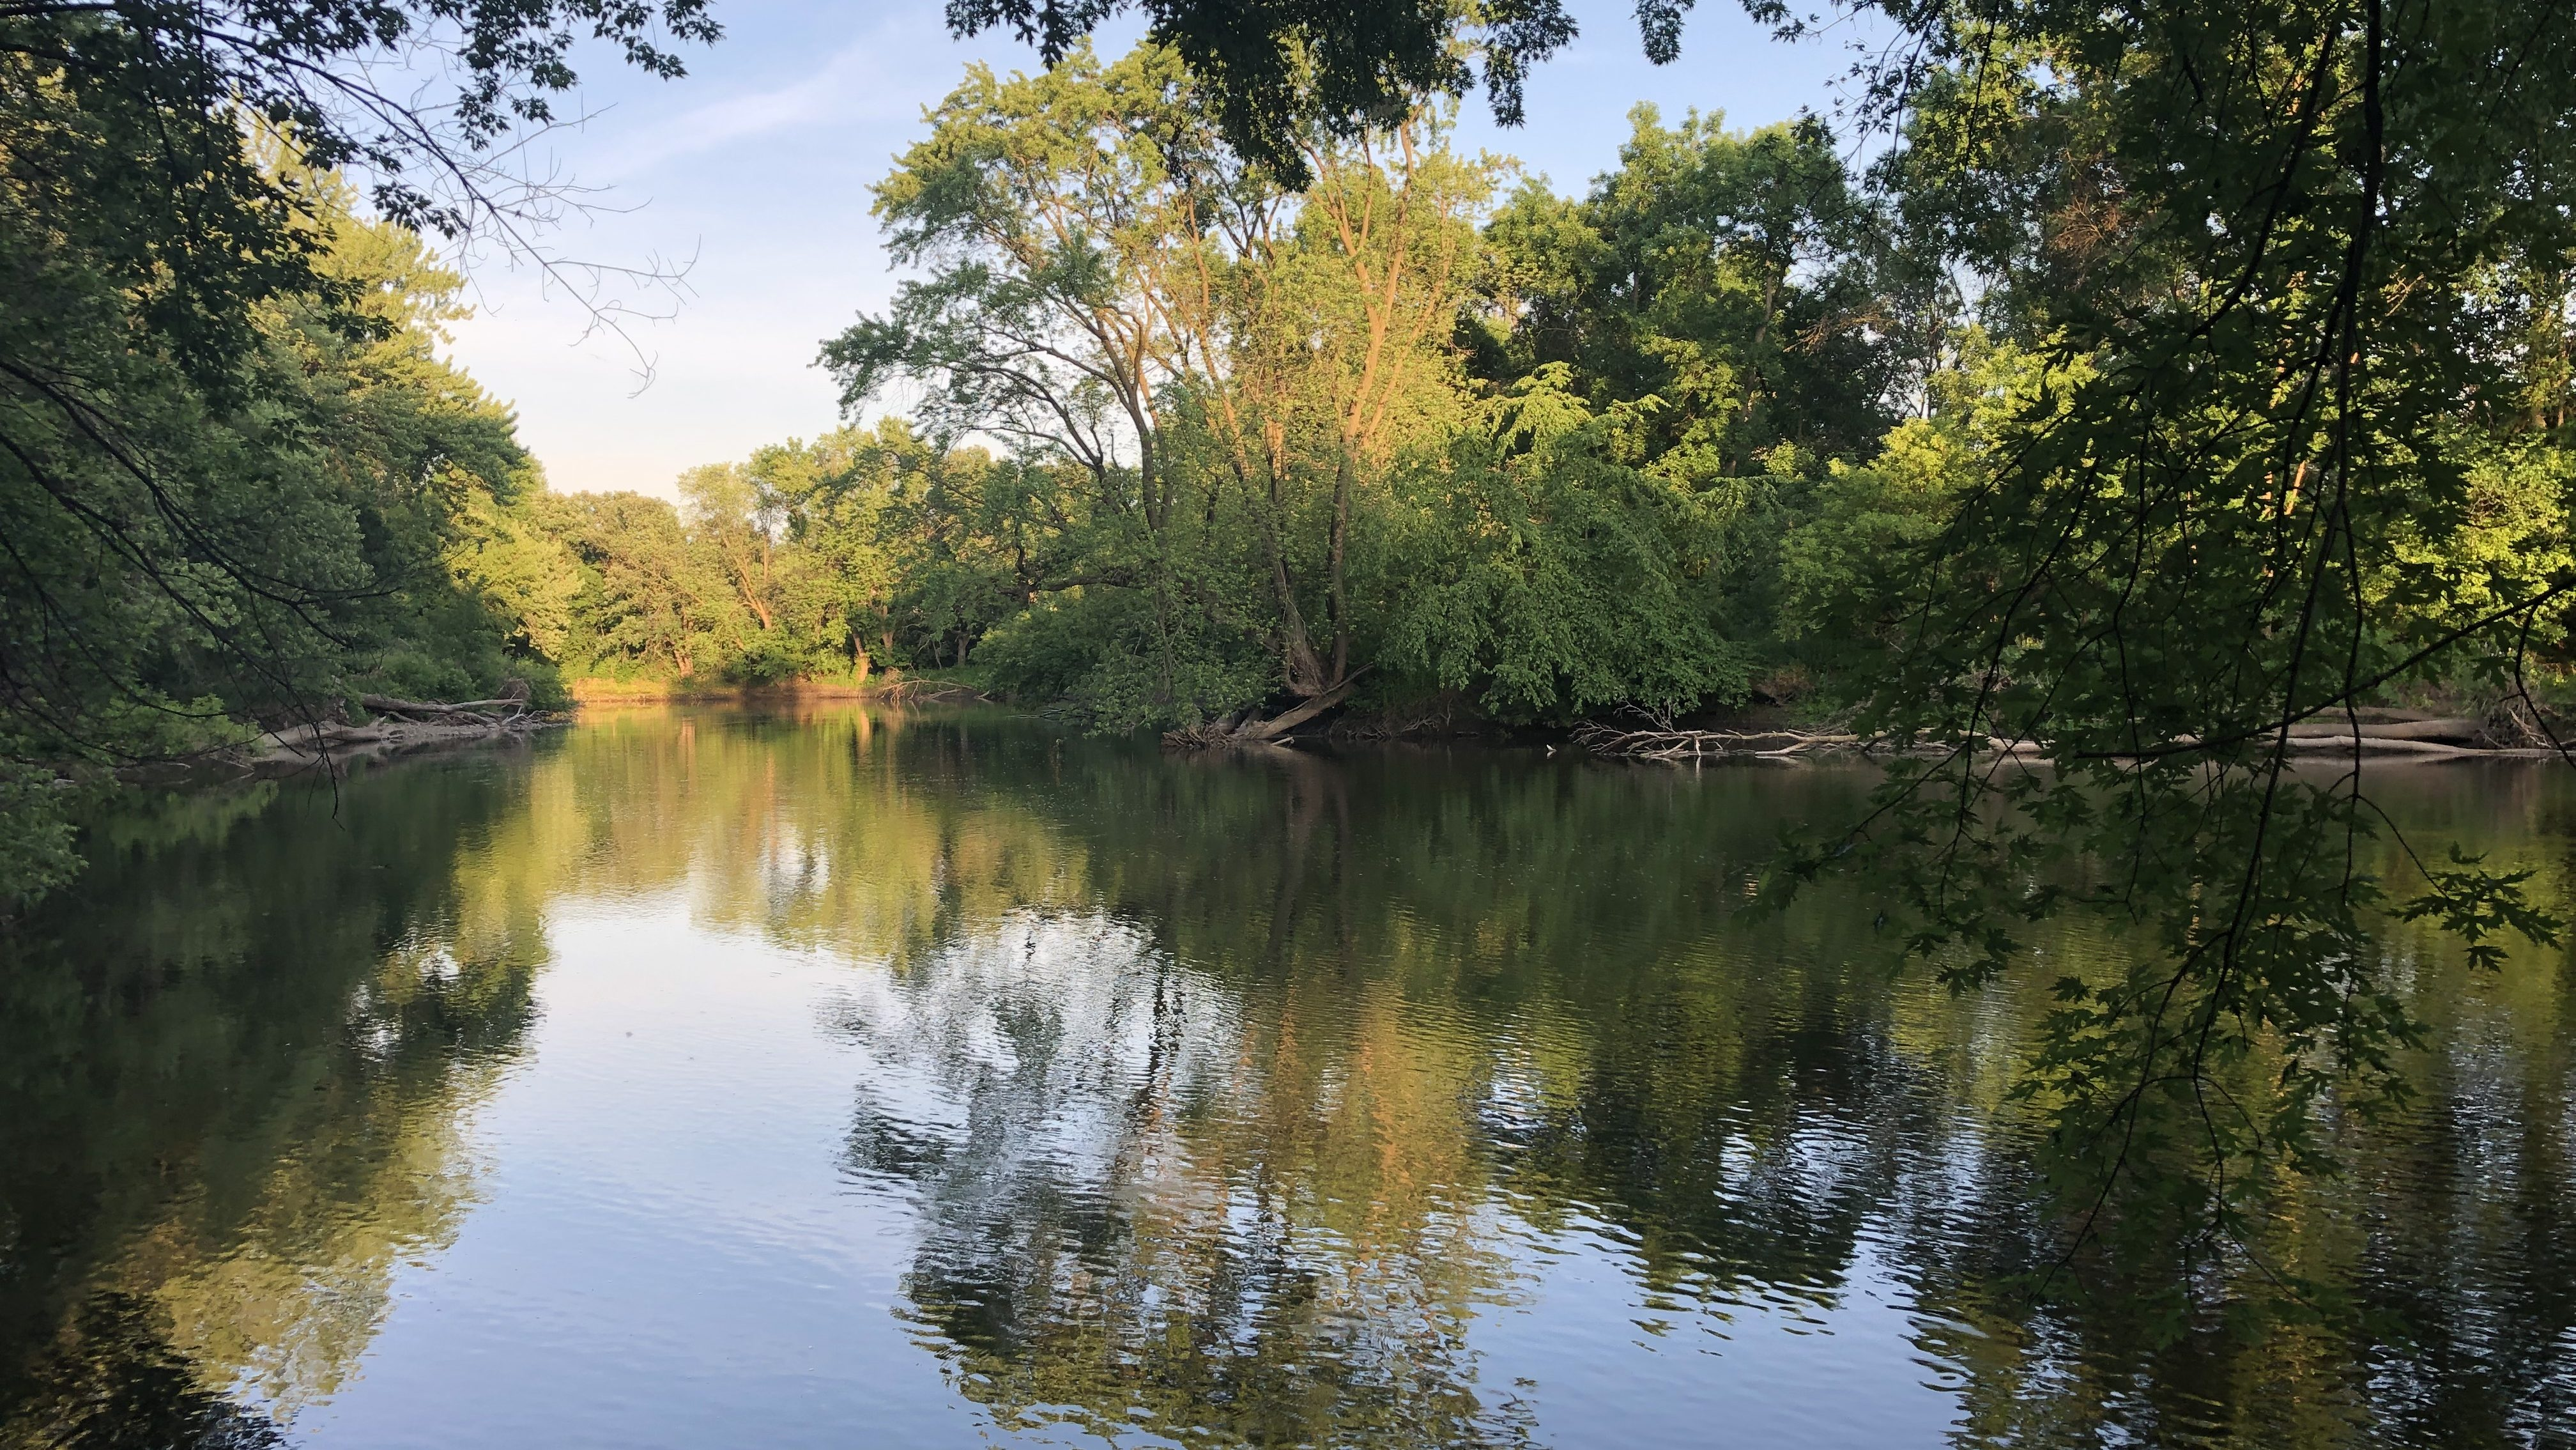 Photo of the Cannon River with reflective trees over the water